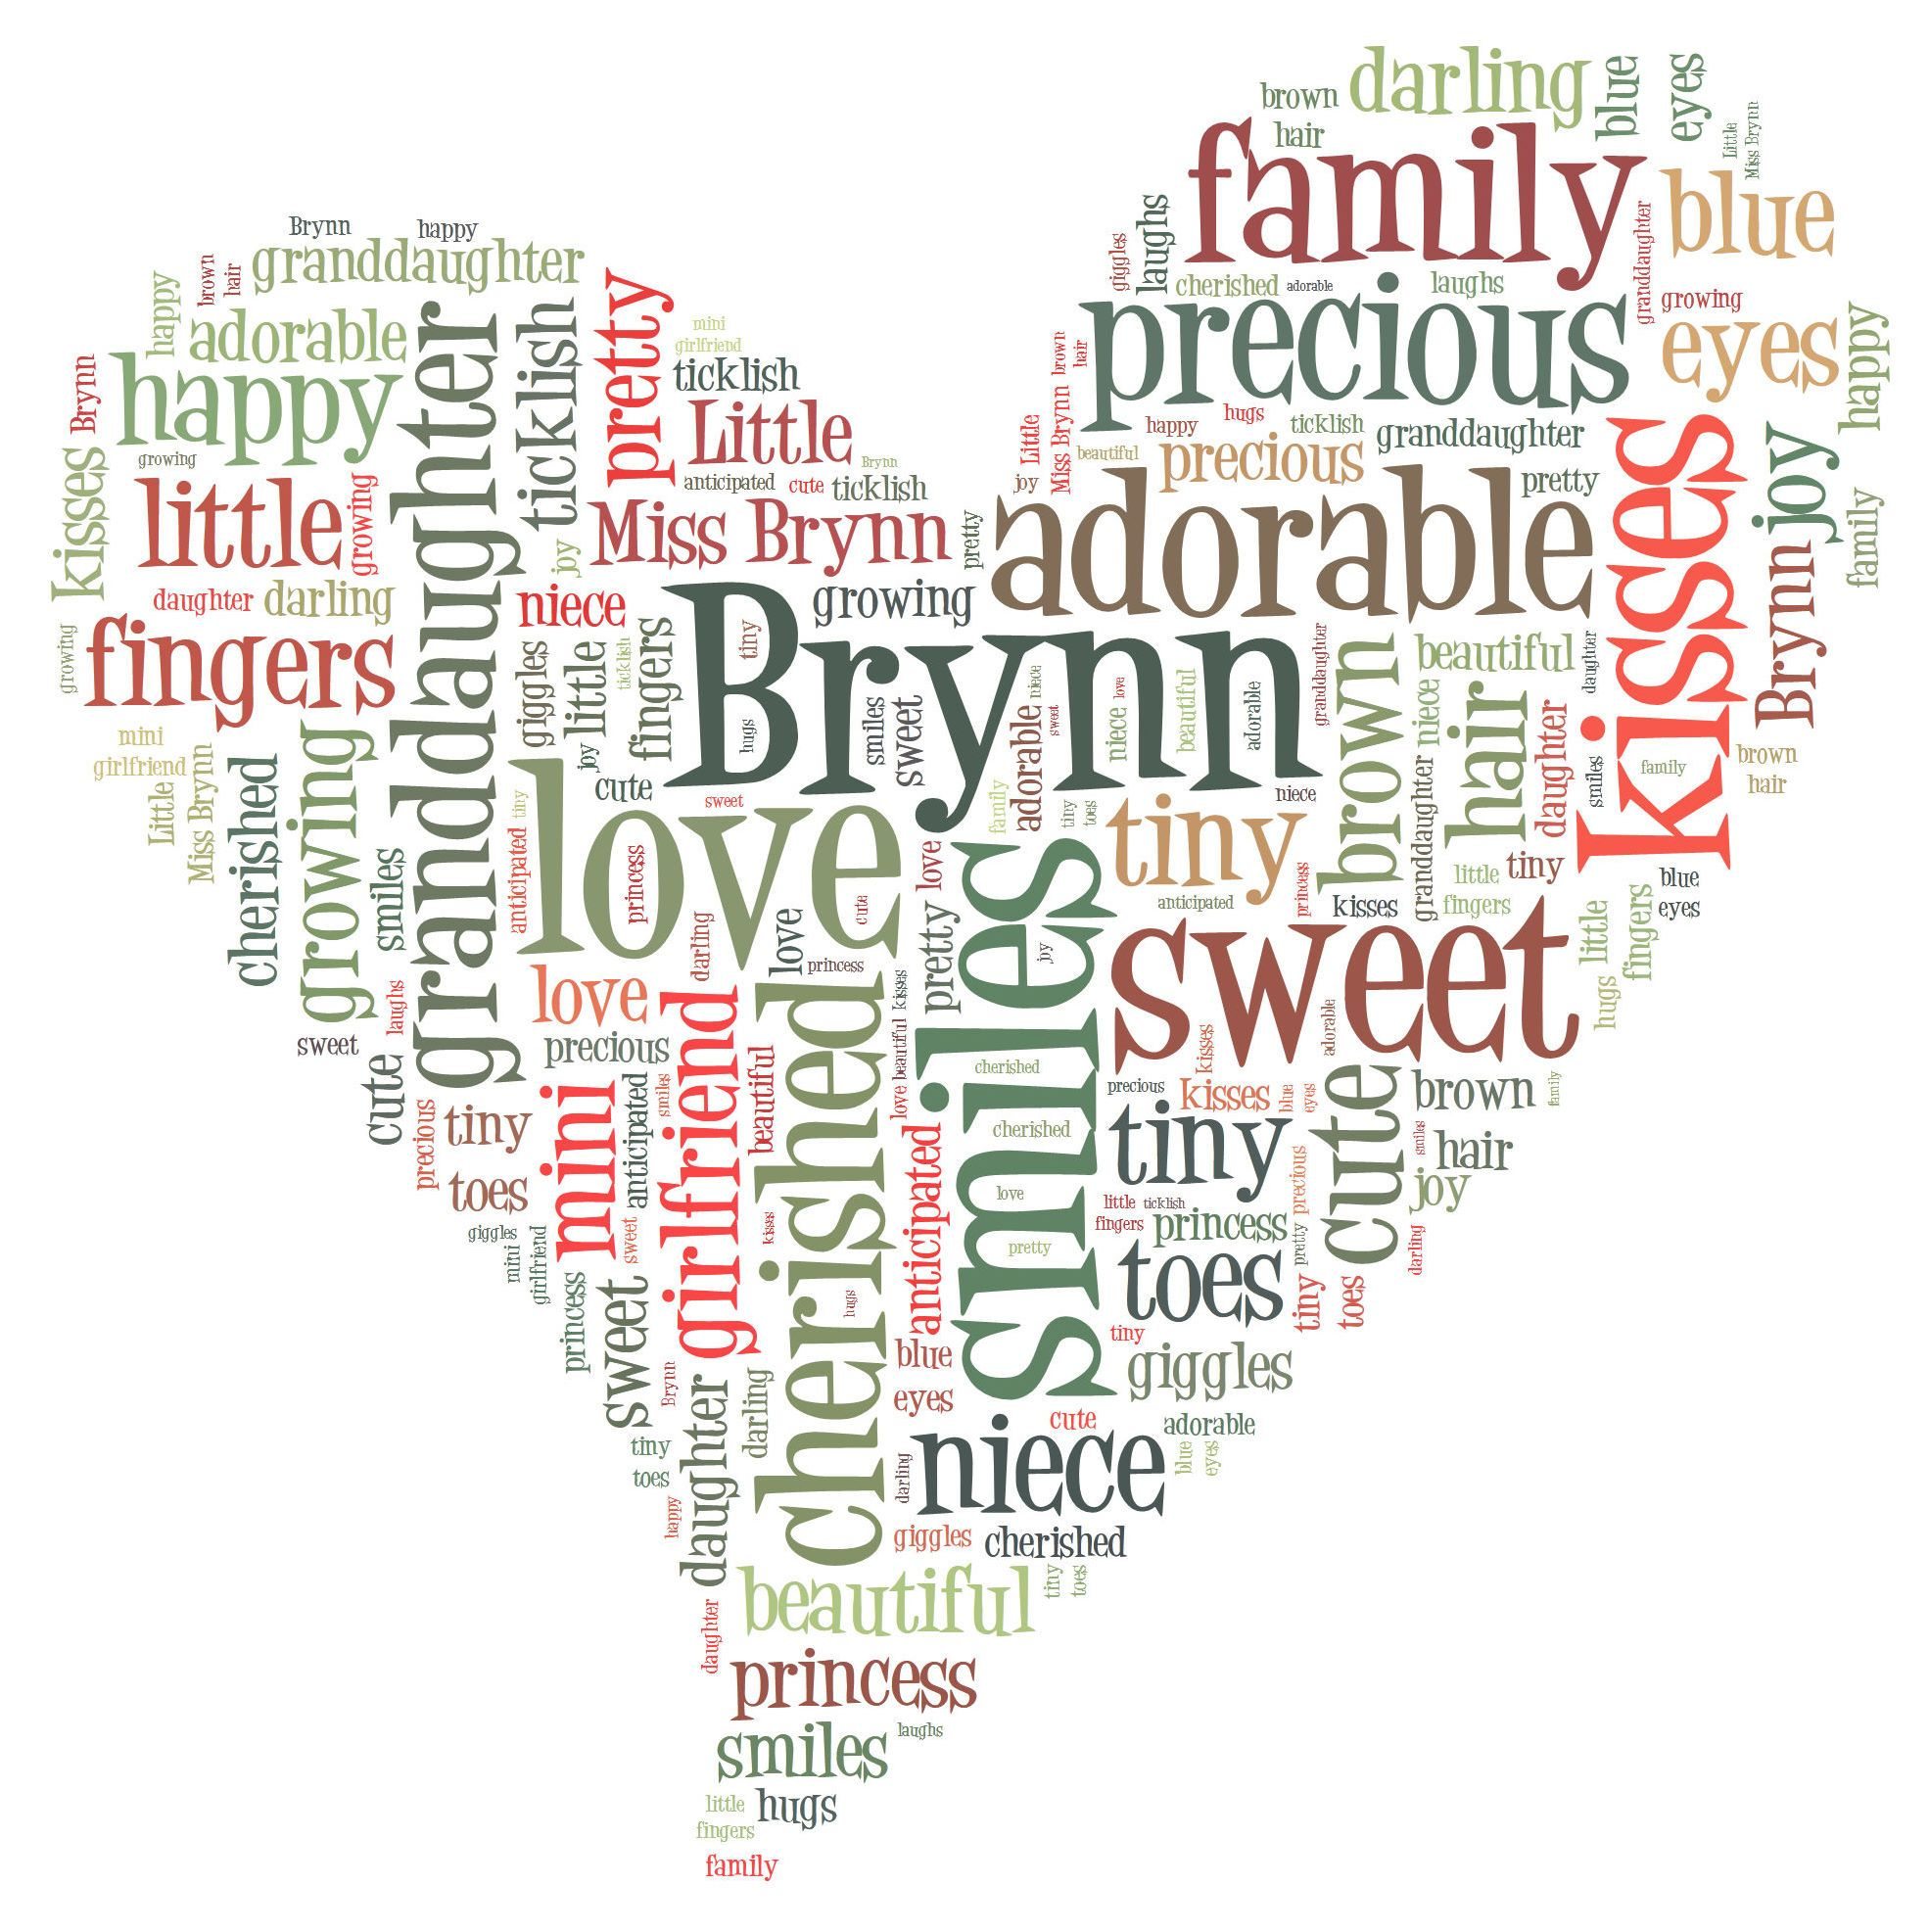 17 Best images about Word Clouds on Pinterest | Chicago ...